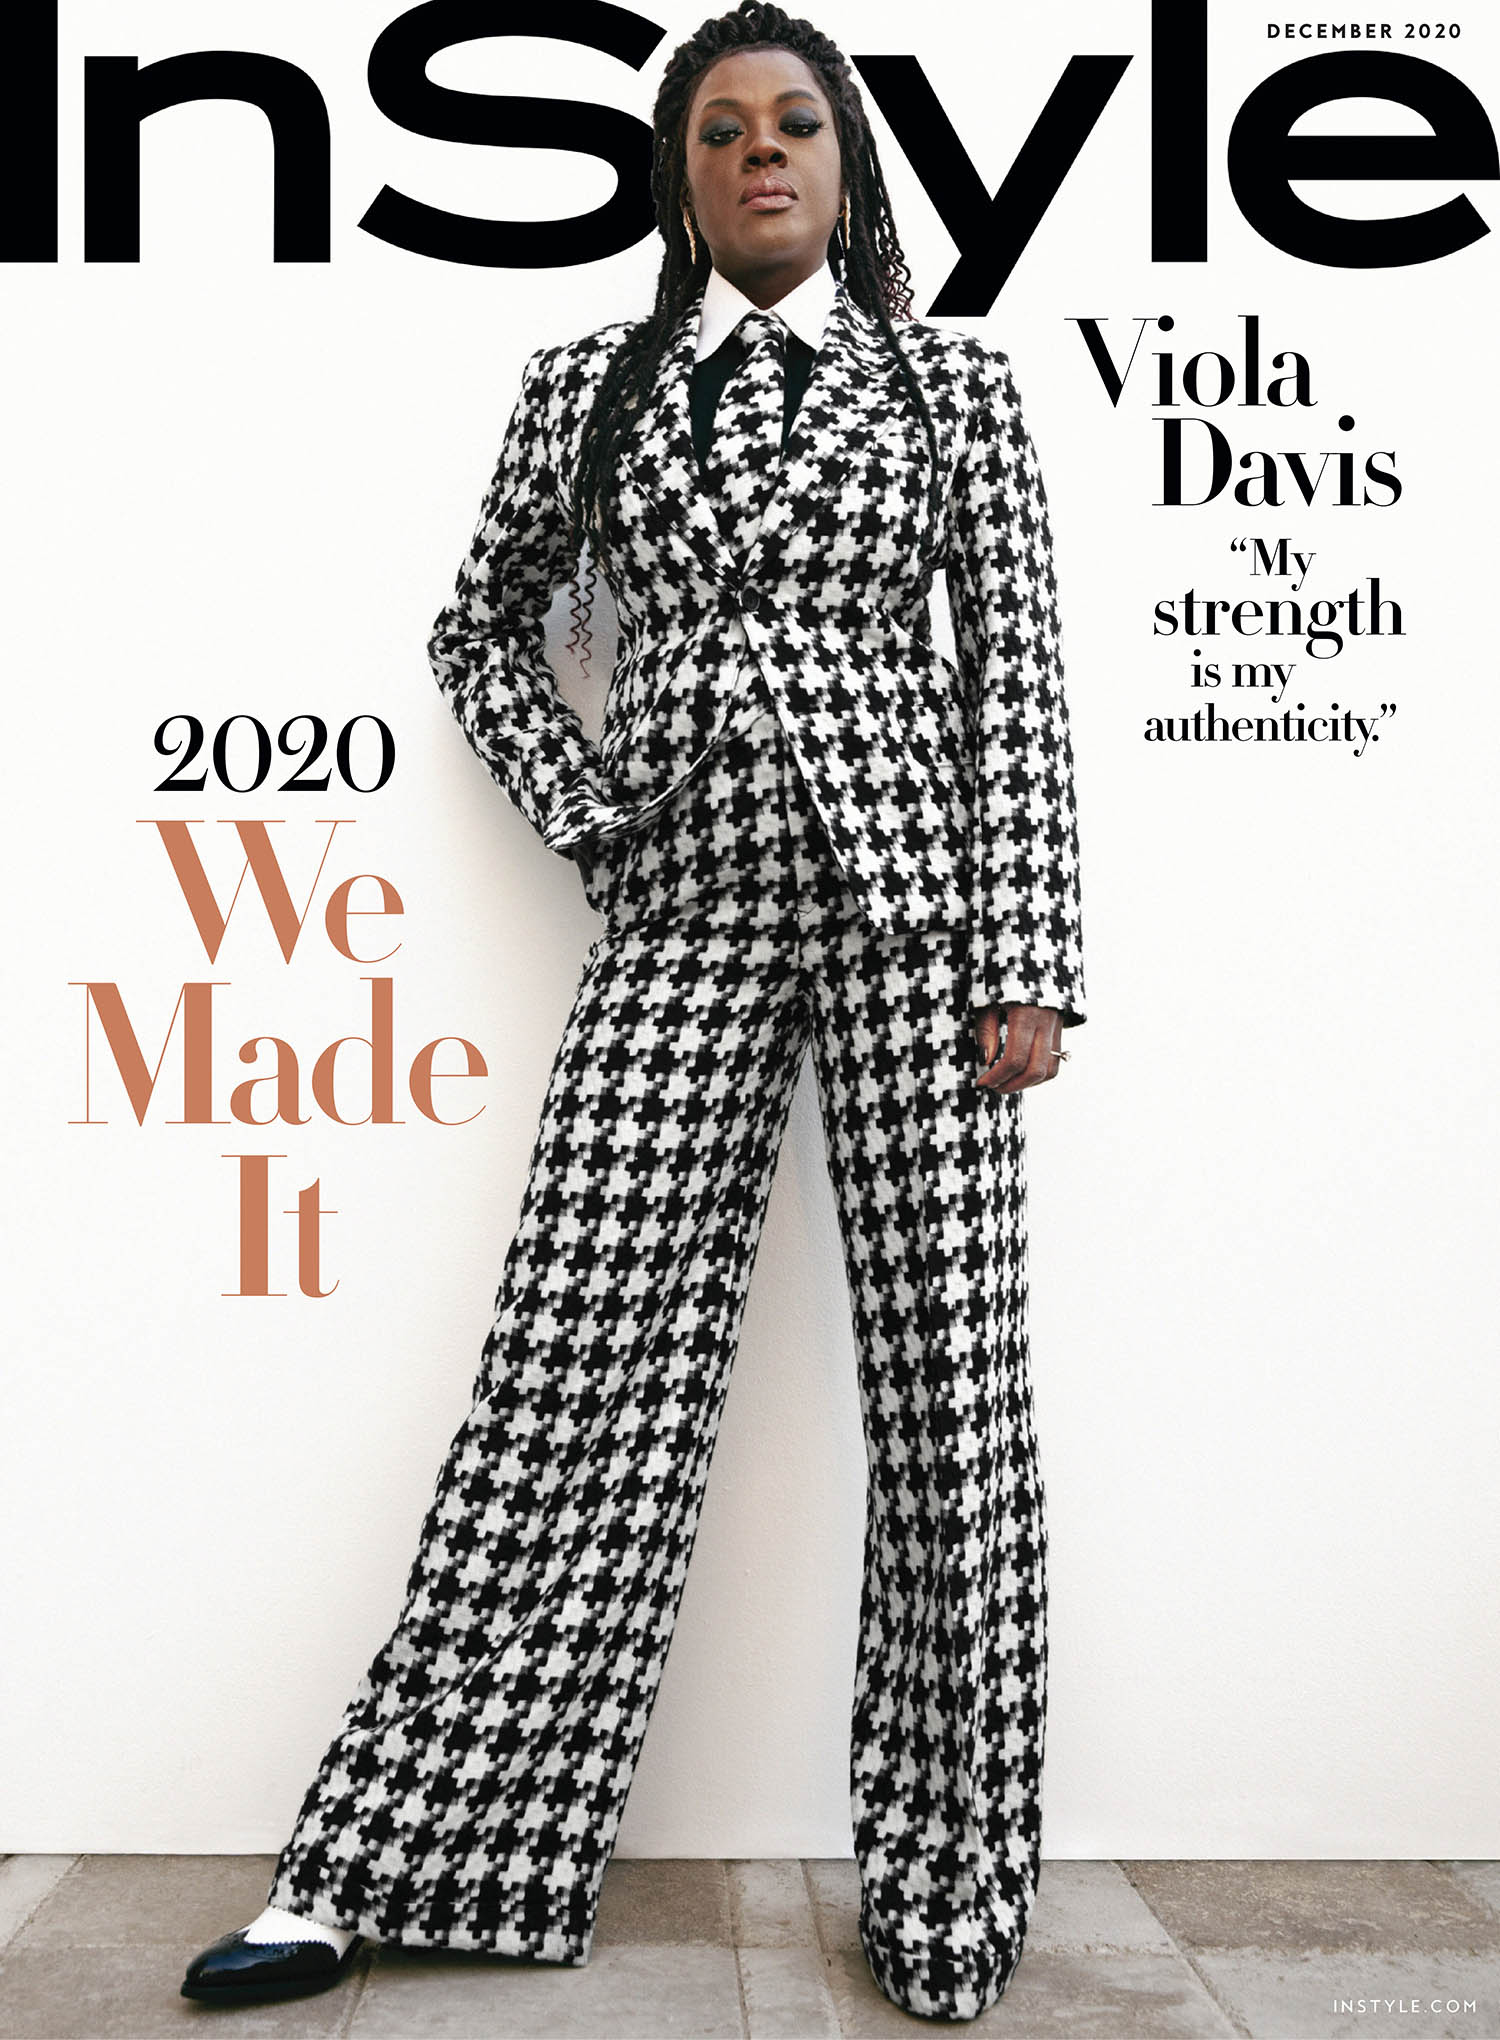 Viola Davis covers InStyle US December 2020 by AB+DM